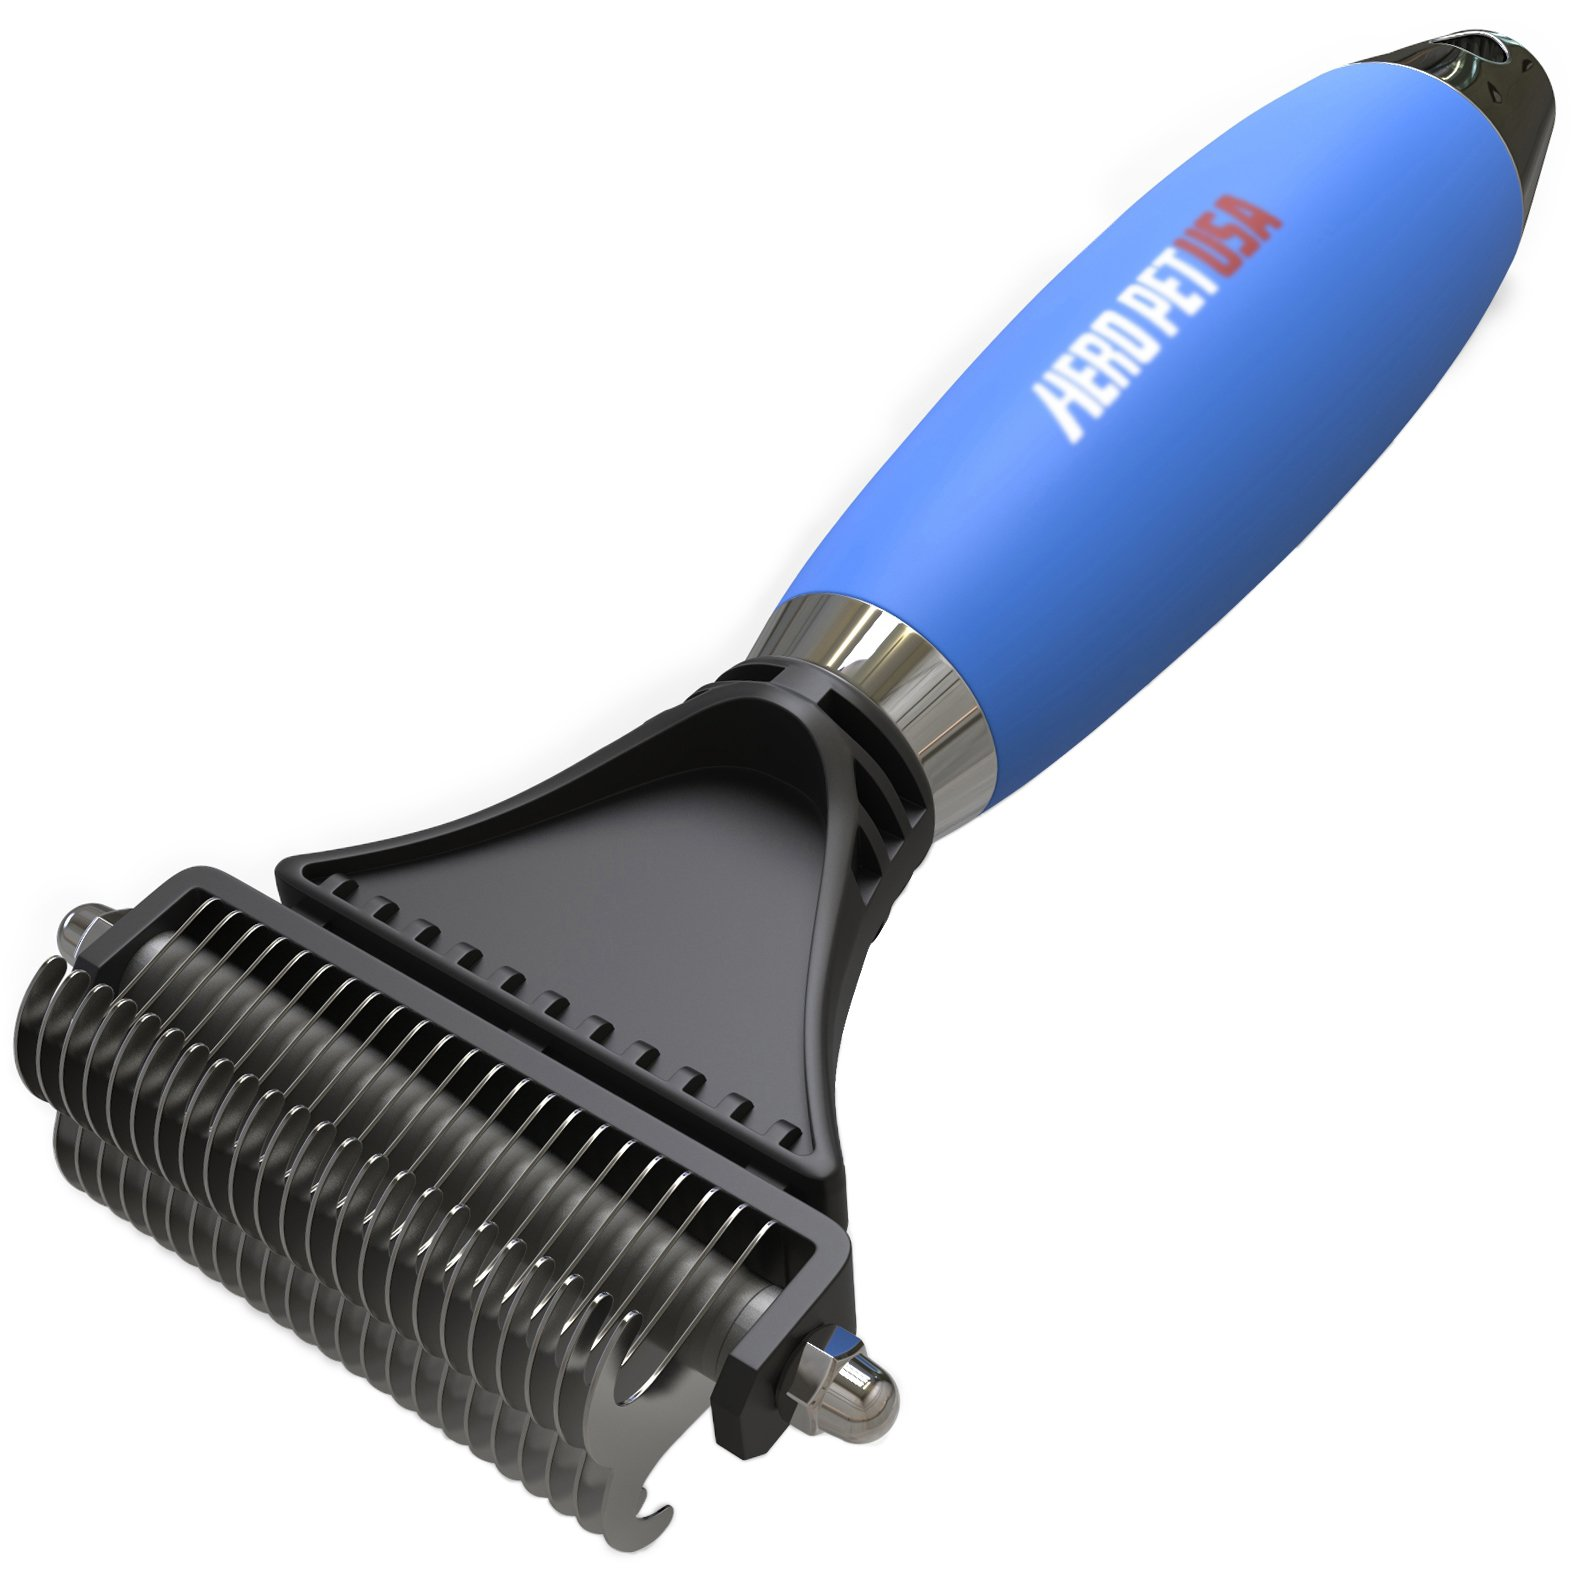 HeroPet USA Dematting Comb - Deshedding Tool, Premium Gel Comfort Grip & Dual Head - Dog, Cat Comb, Easily & Safely Removes Knots, Mats, Tangles and Undercoat, Great for Brushing & Grooming